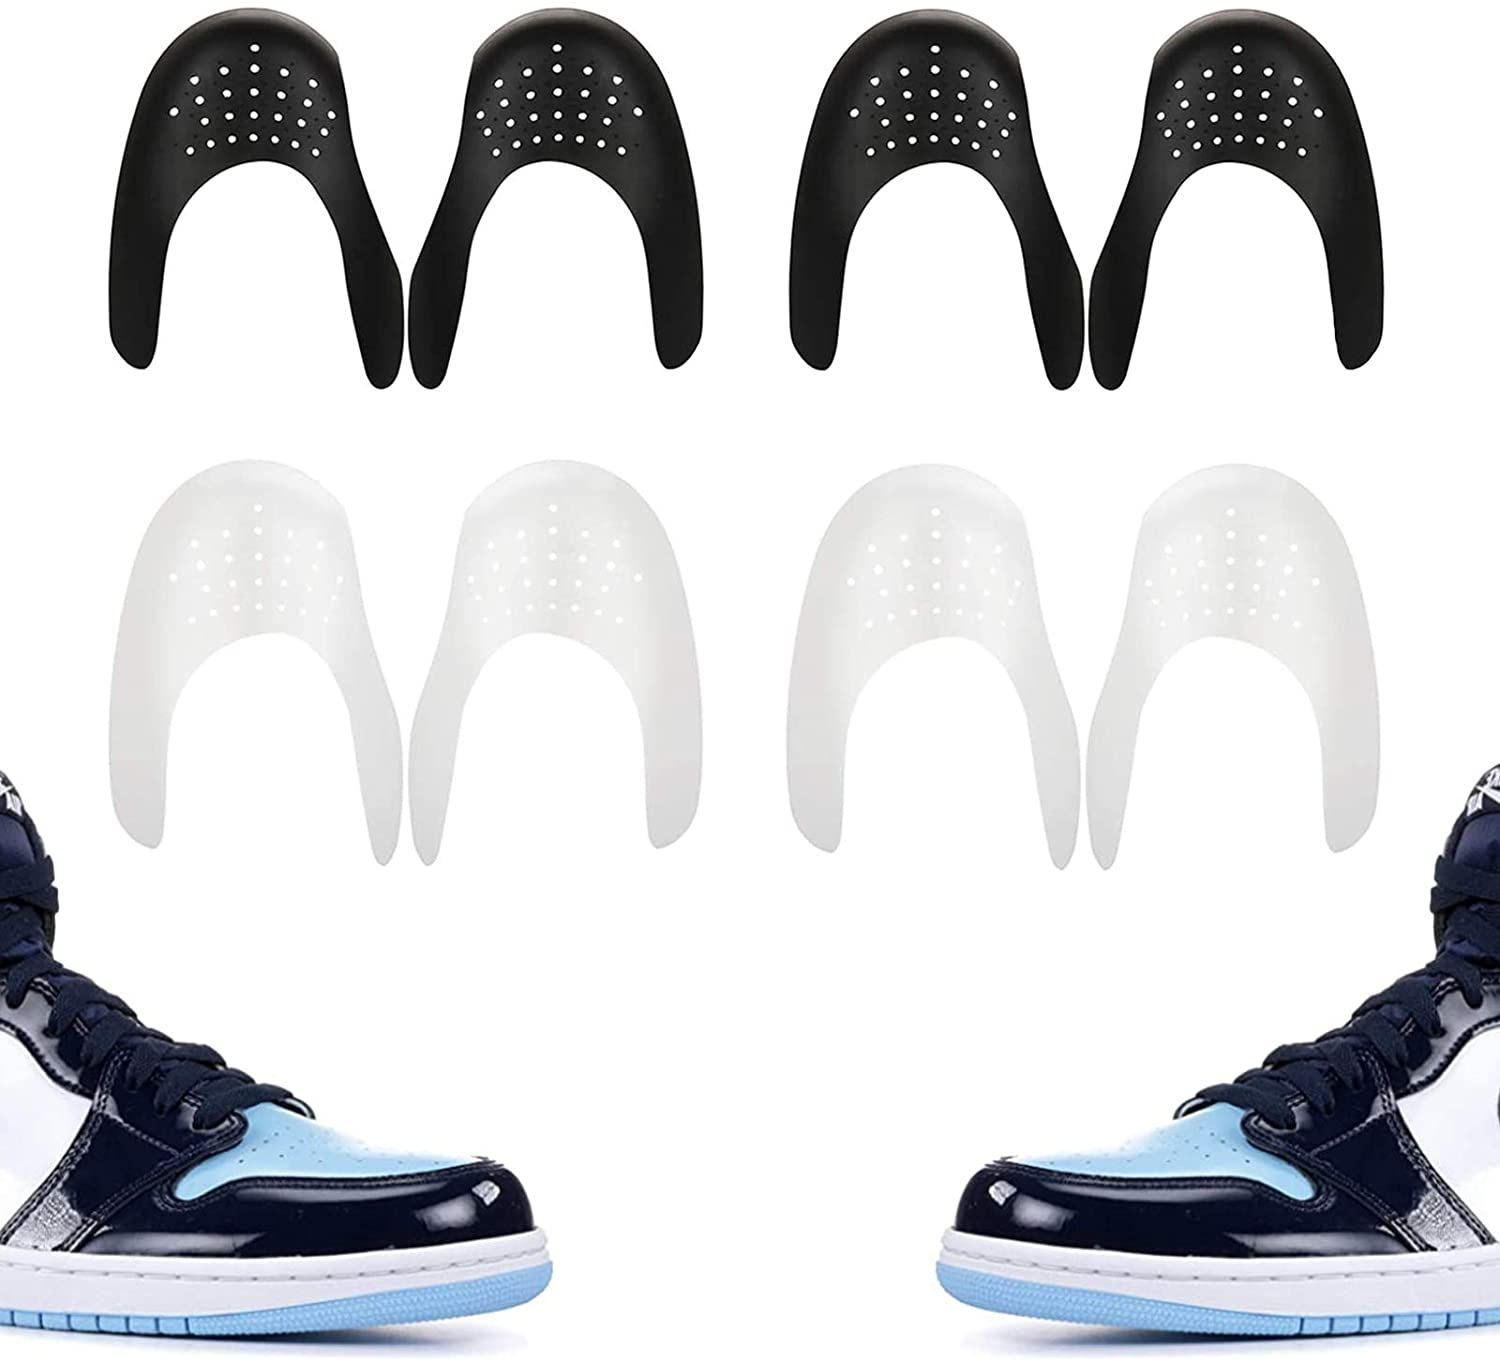 Shoe Crease Protectors Toe Box Decreaser Prevent Shoes Crease Indentation Anti-Wrinkle Shoes Creases Protector Men's 7-12(4Pairs),Black and White